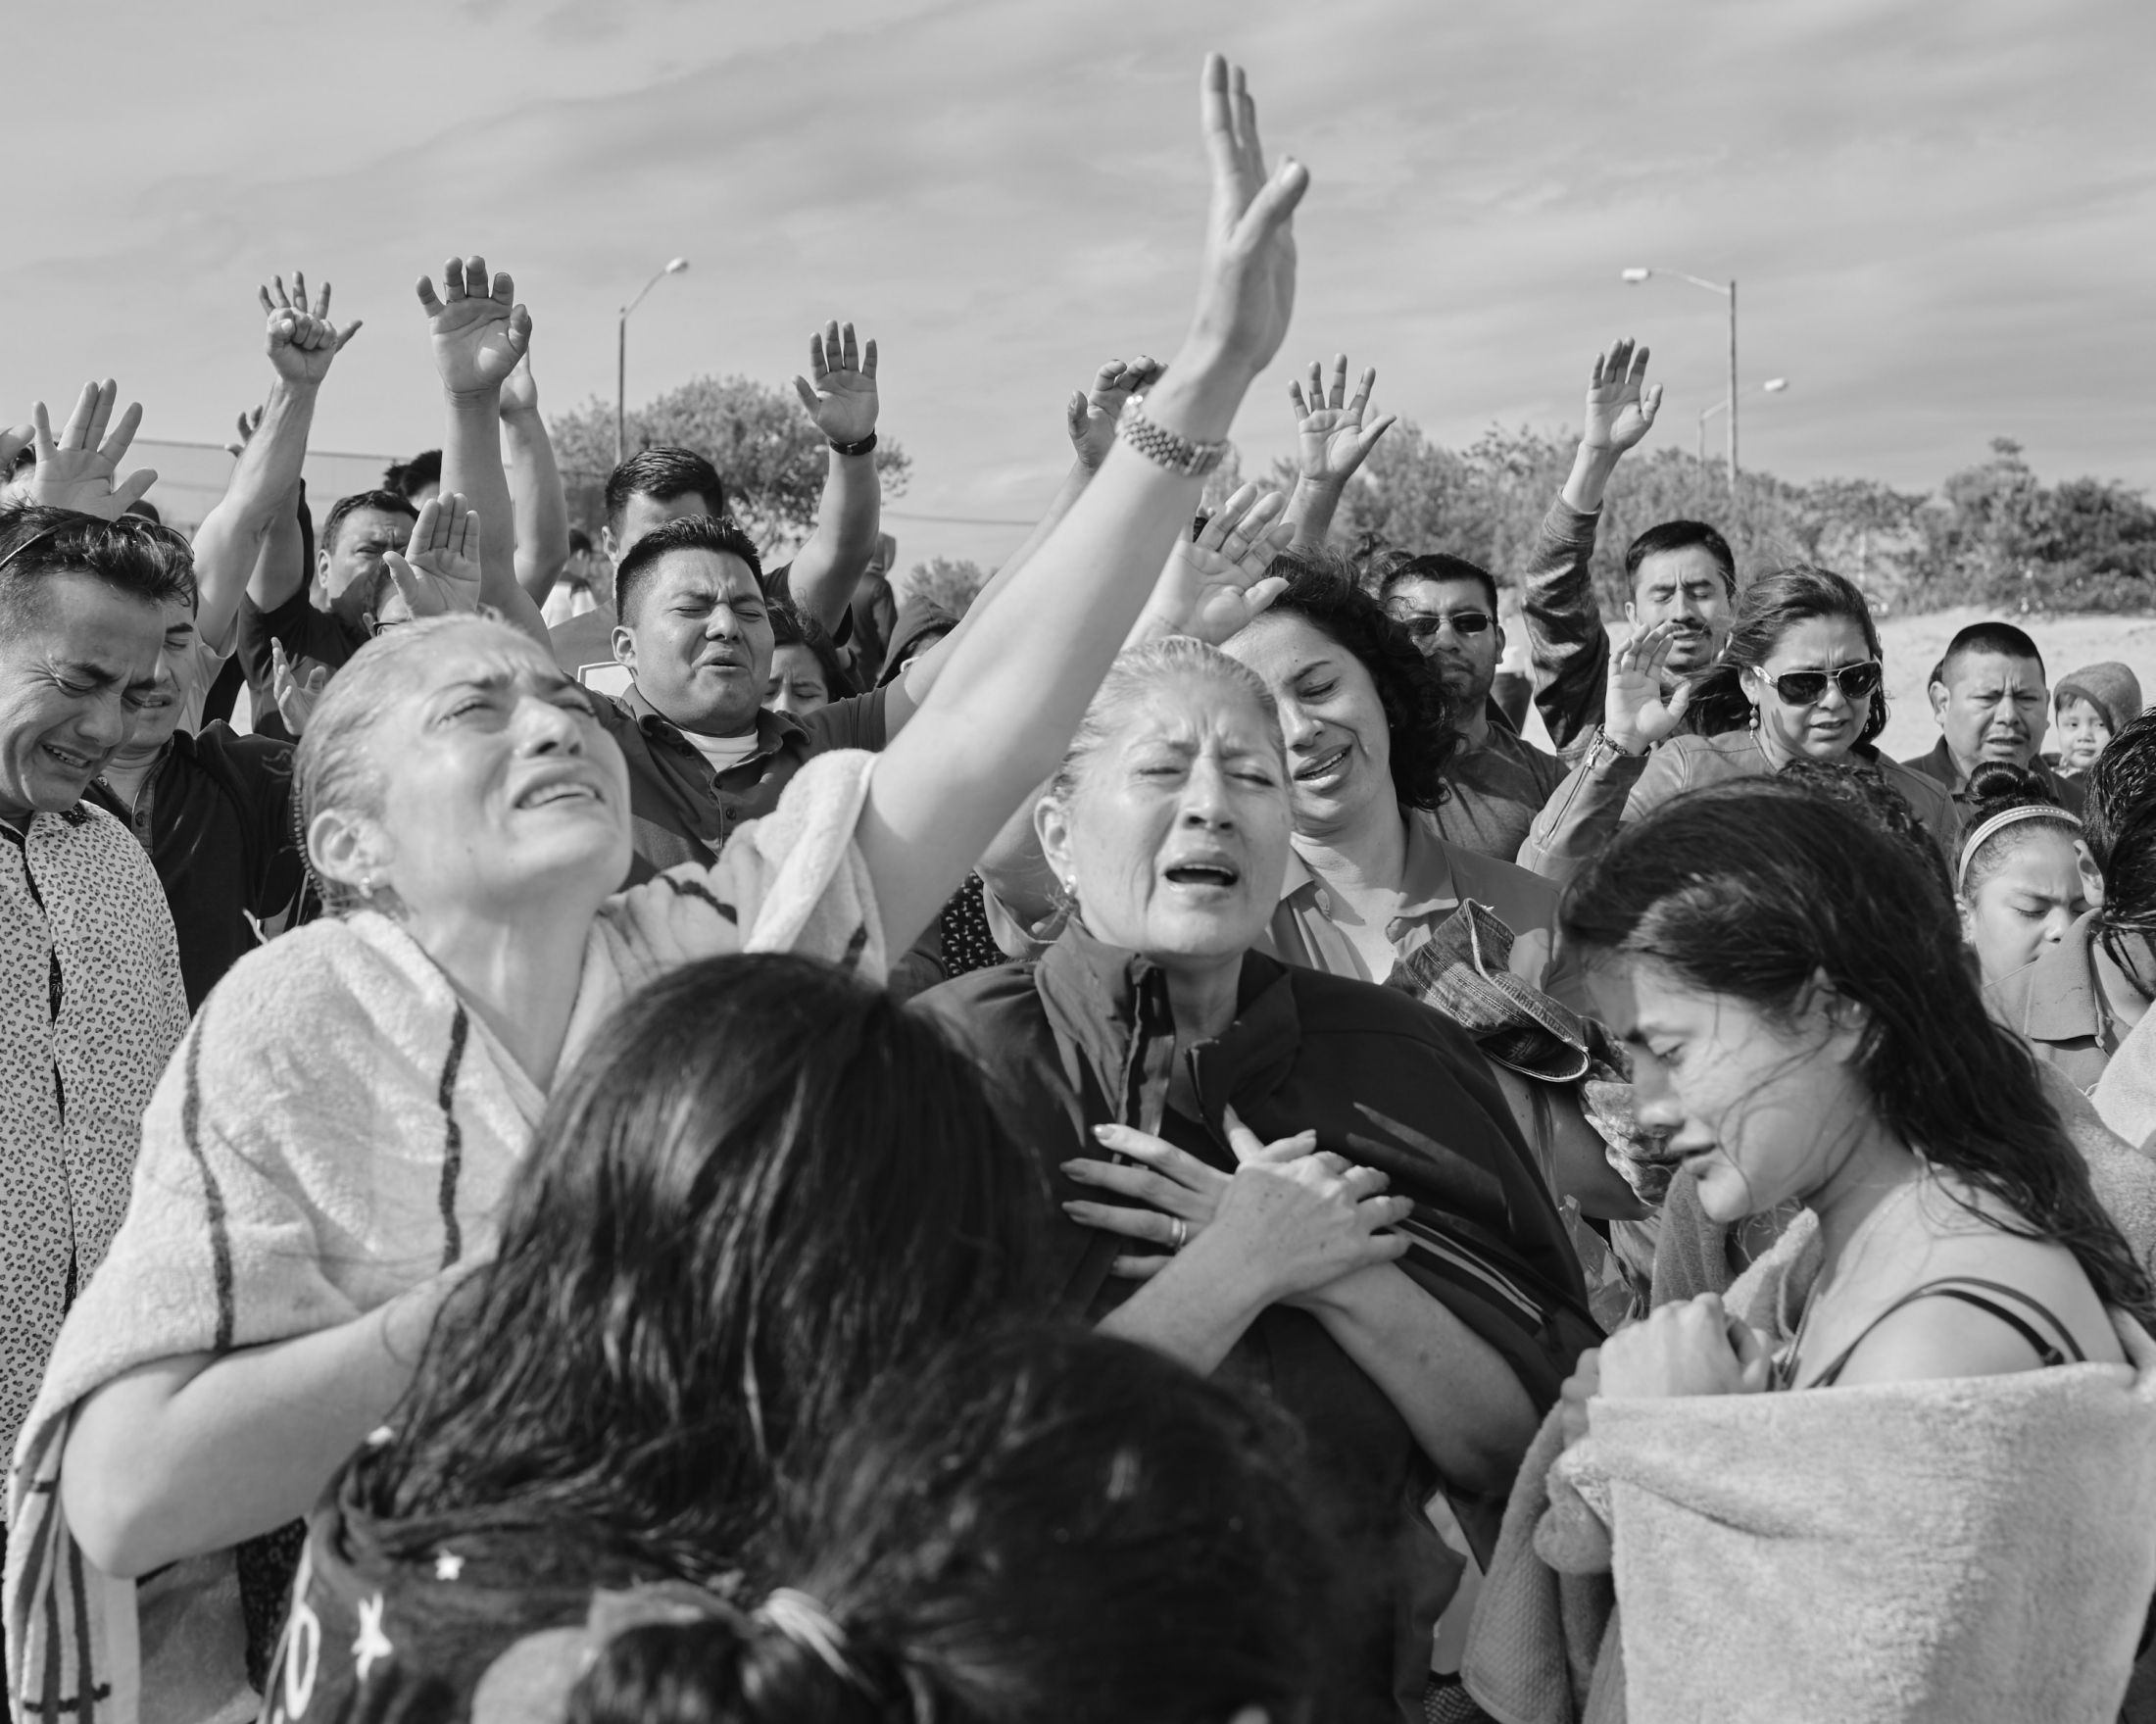 A group of Mexican evangelical cheers to a baptism celebrated over the Reynolds Channel in Far Rockaway. Different groups, coming from Queens, Bronx, and even nearby states,  uses the Rockaways a shared space to celebrate their religious beliefs. New York, 2019.